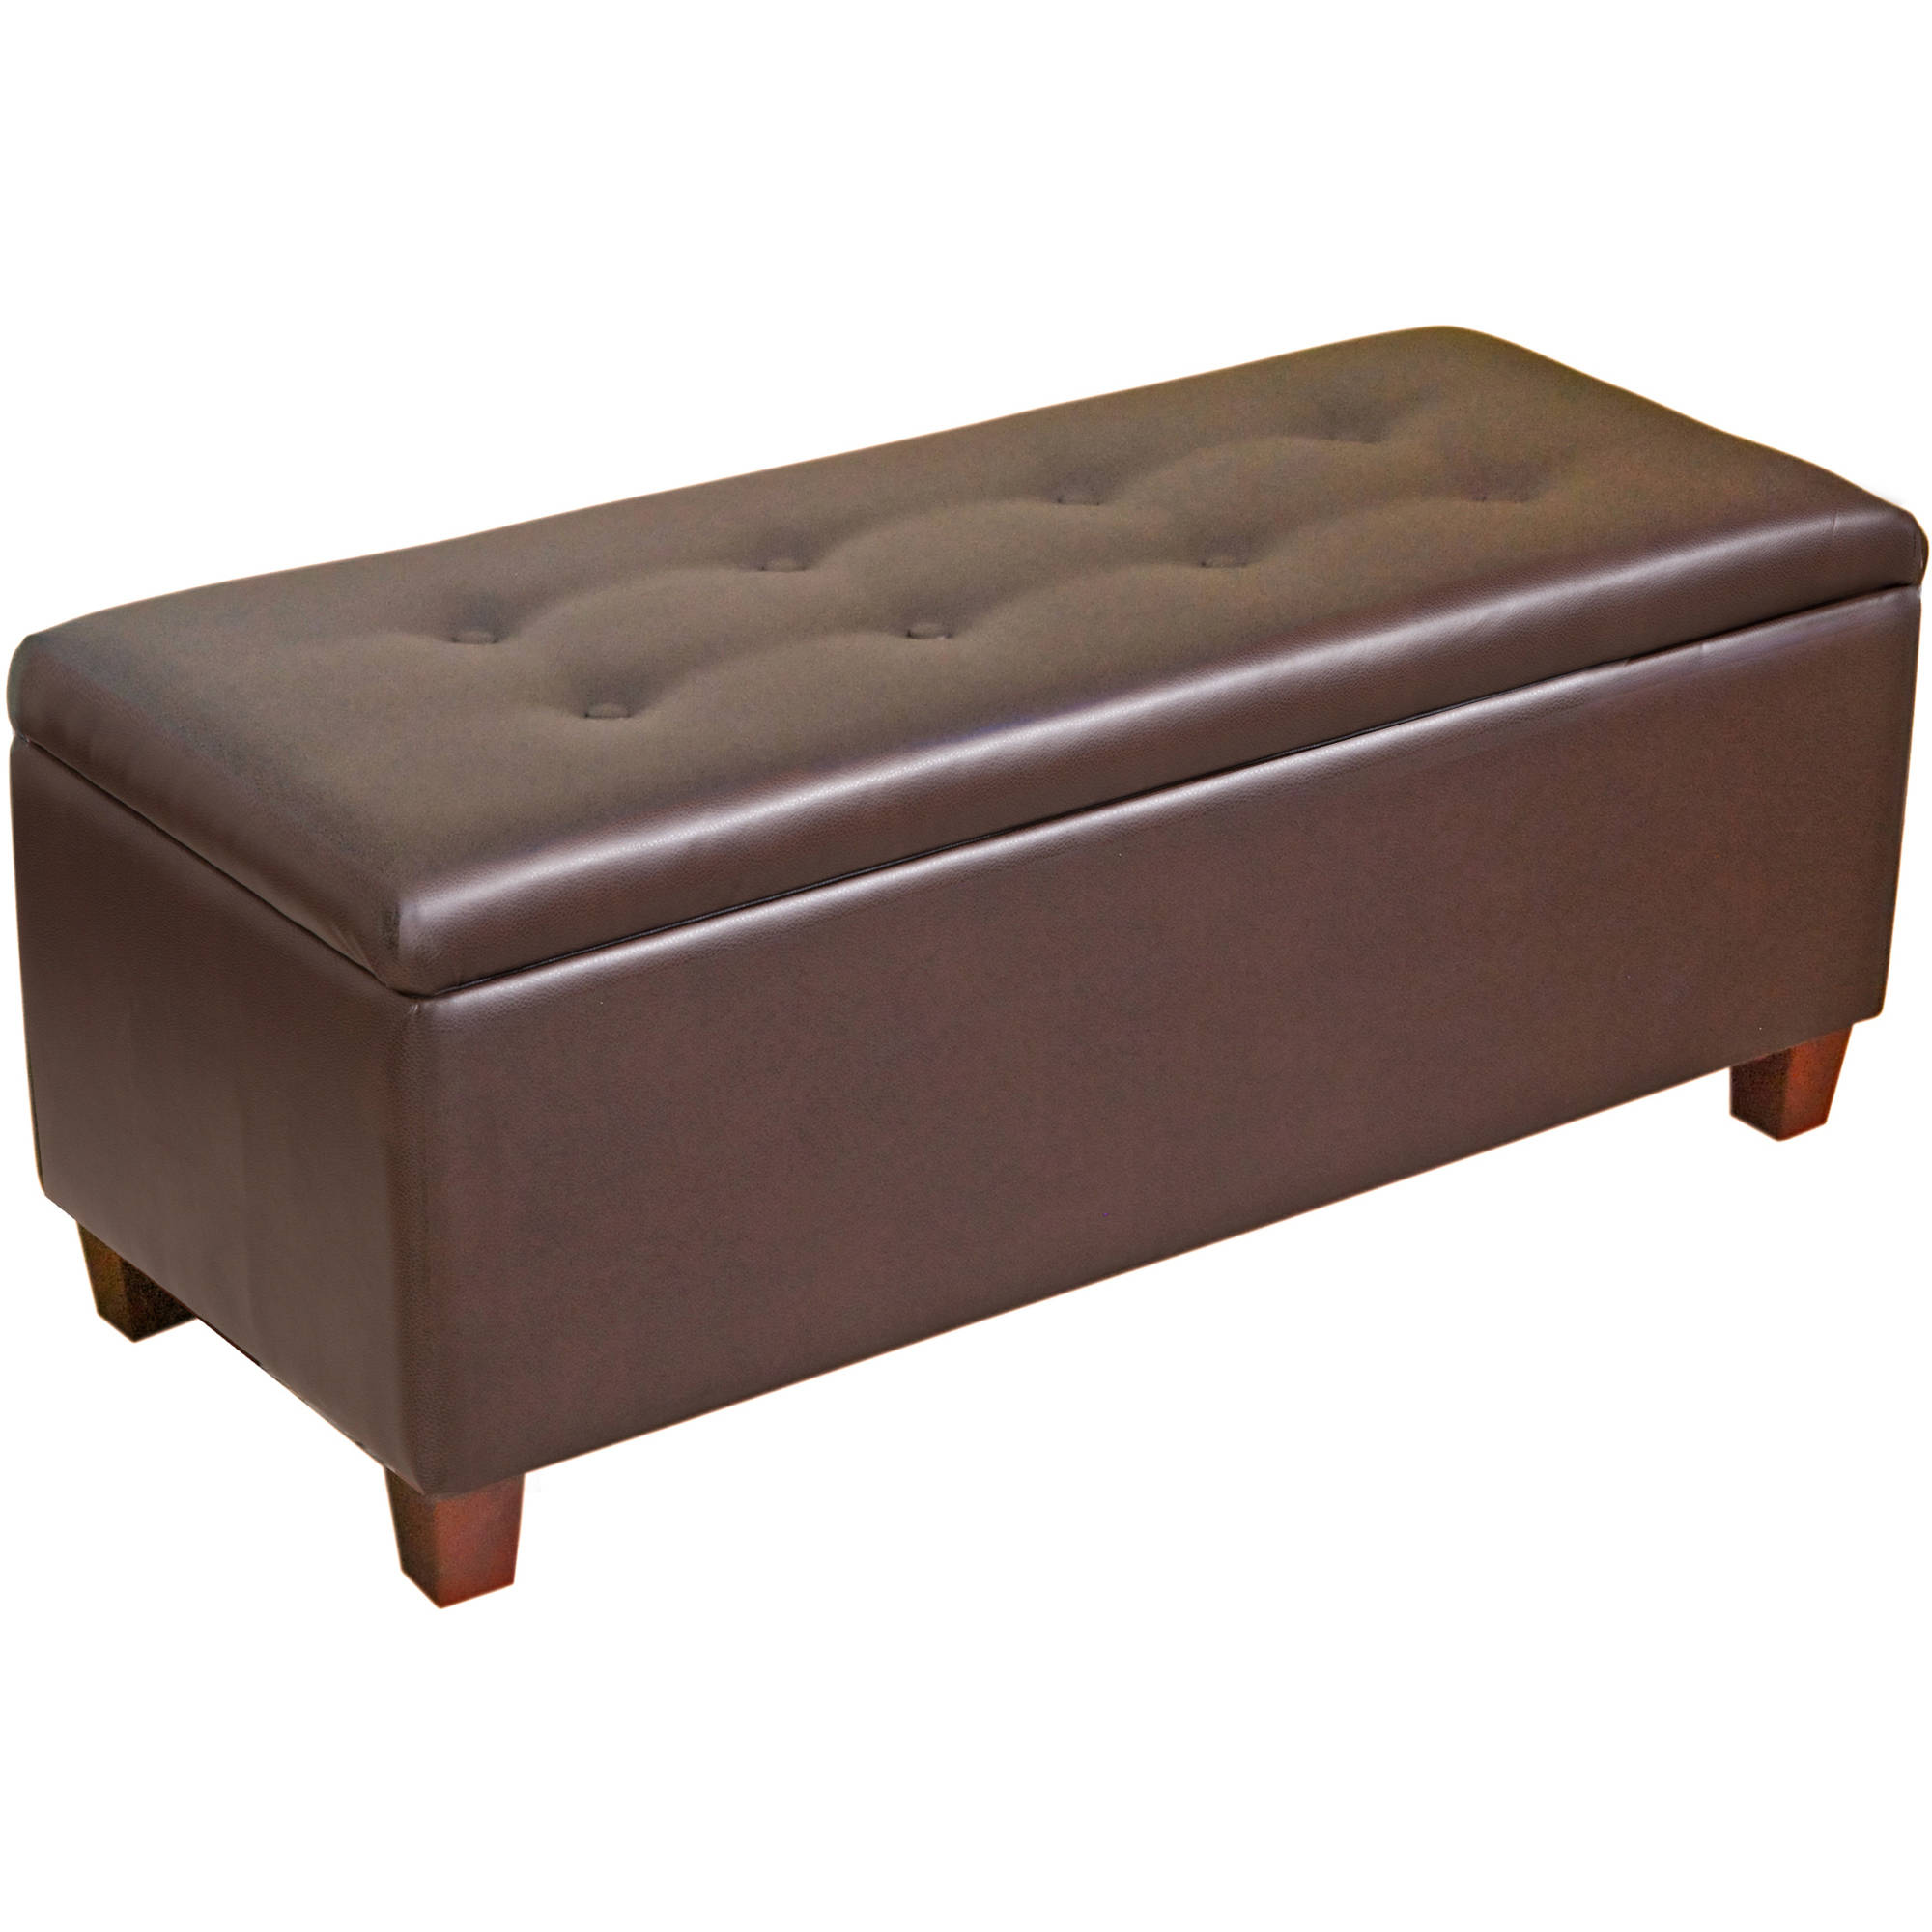 HomePop Large Faux Leather Storage Ottoman, Multiple Colors